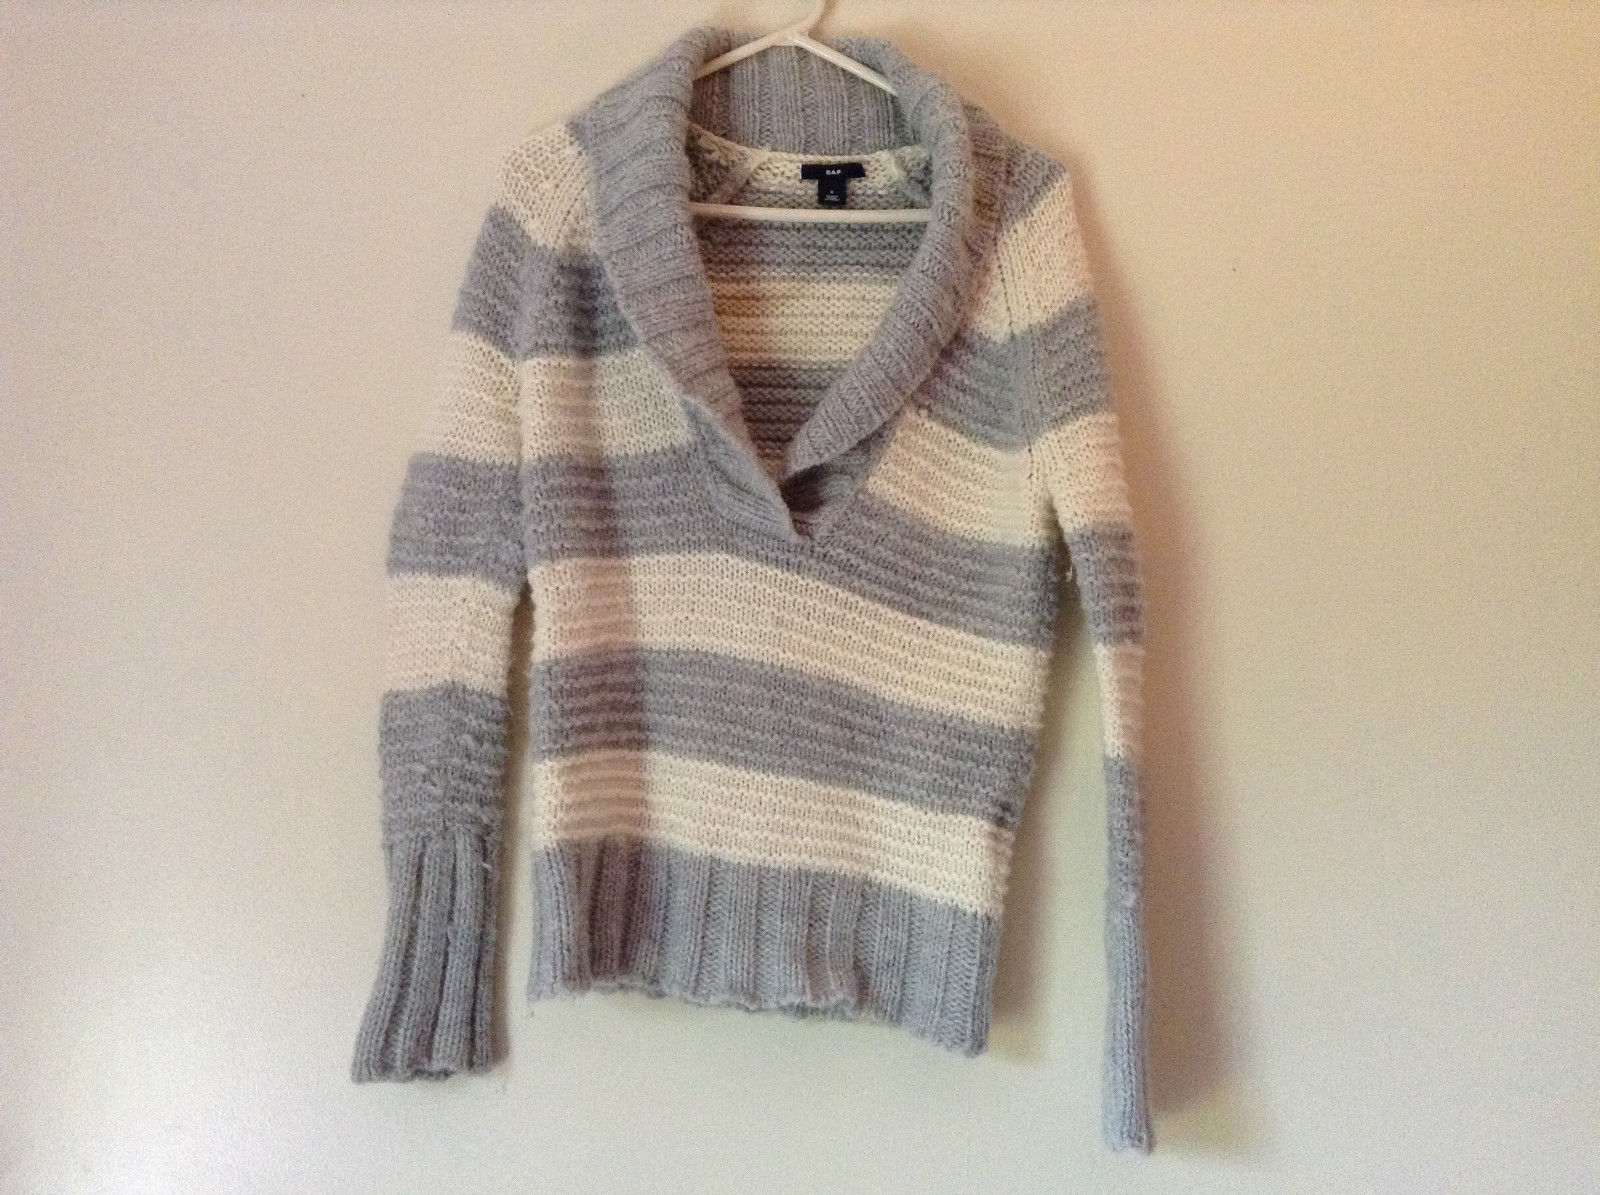 V Neck Knitted White and Gray Striped Sweater by GAP Measurements Below